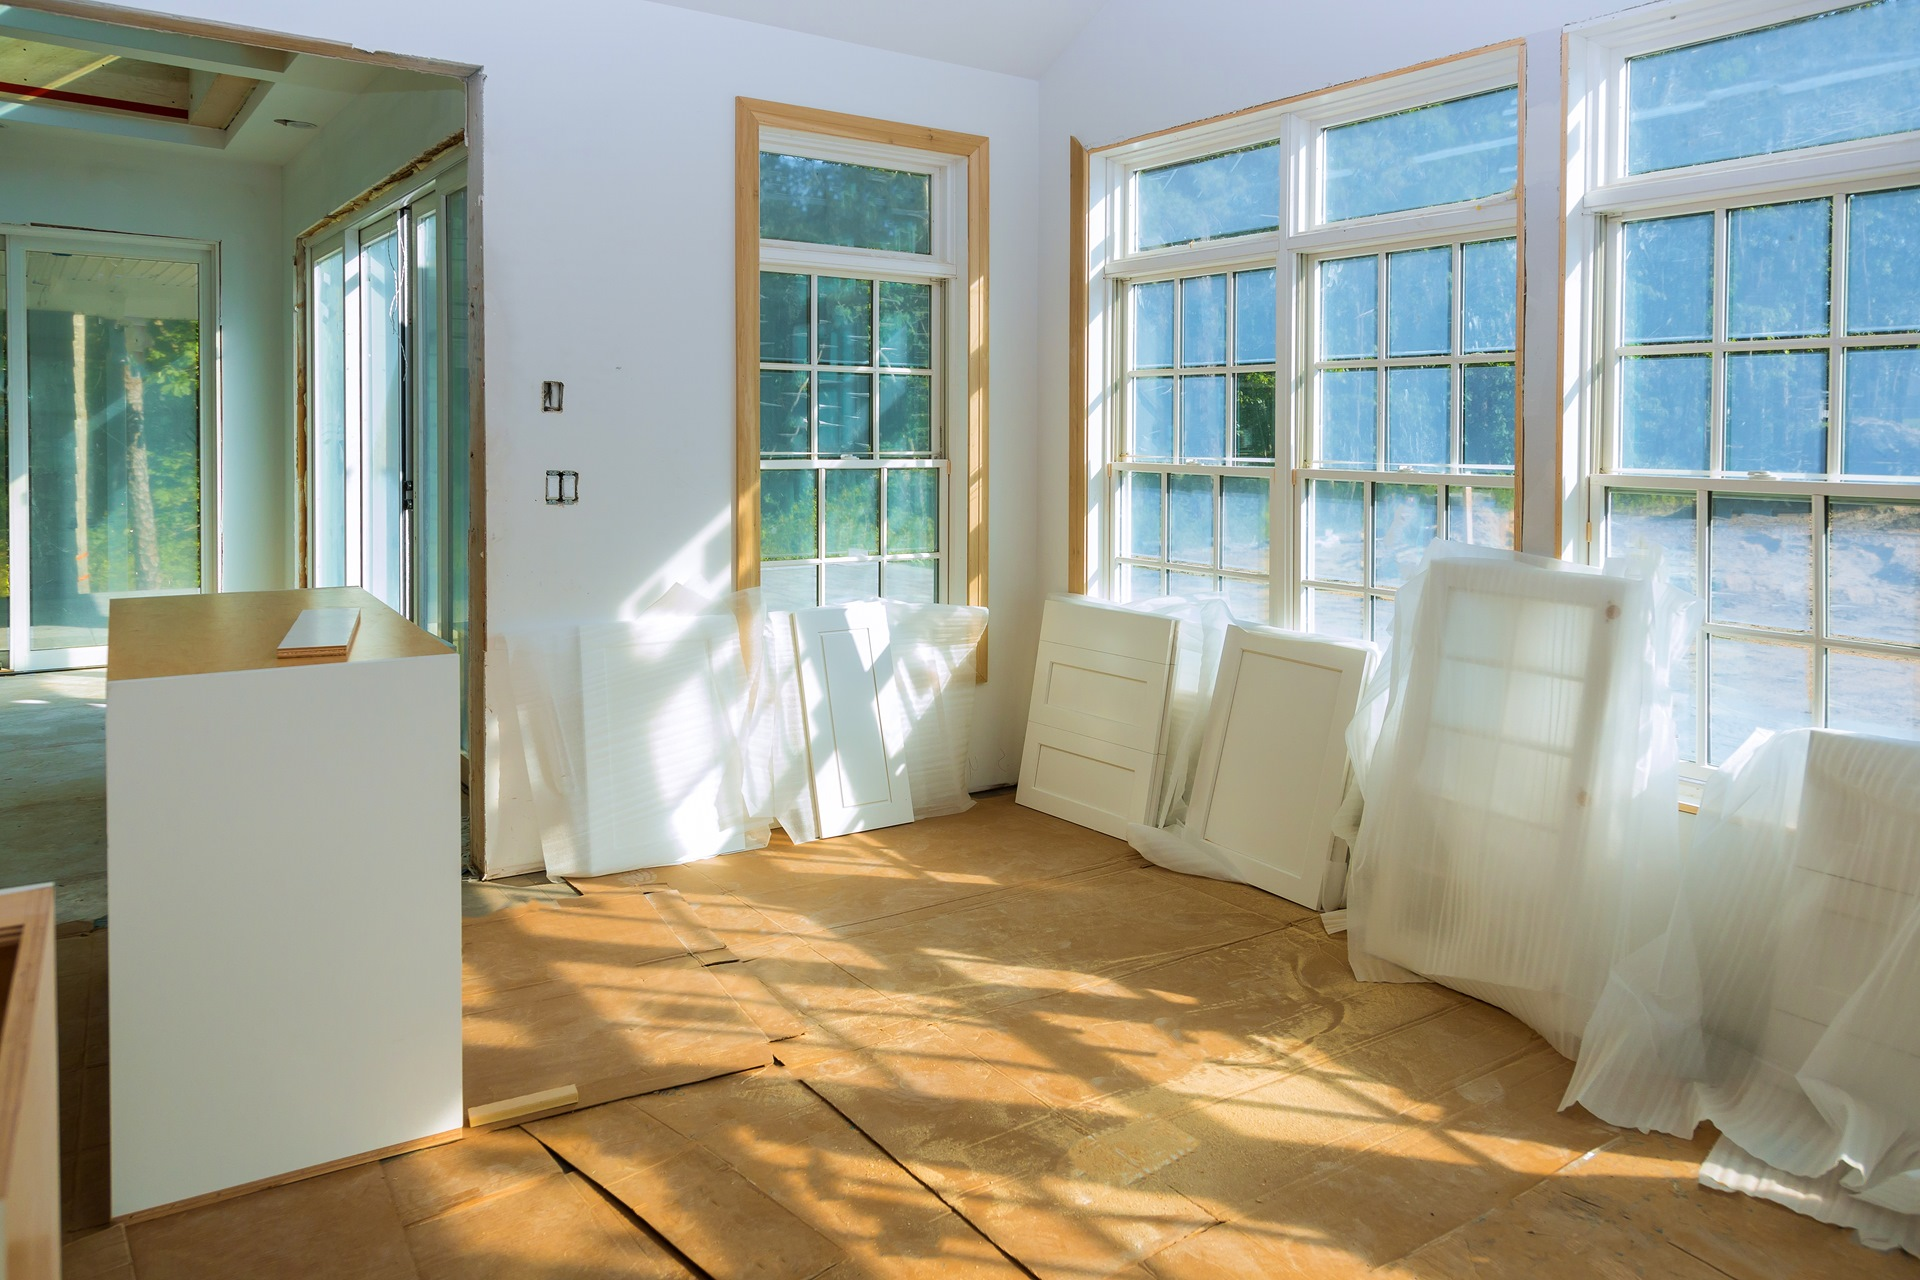 Preparation for installation for under construction, remodeling, renovation, extension, restoration and reconstruction.